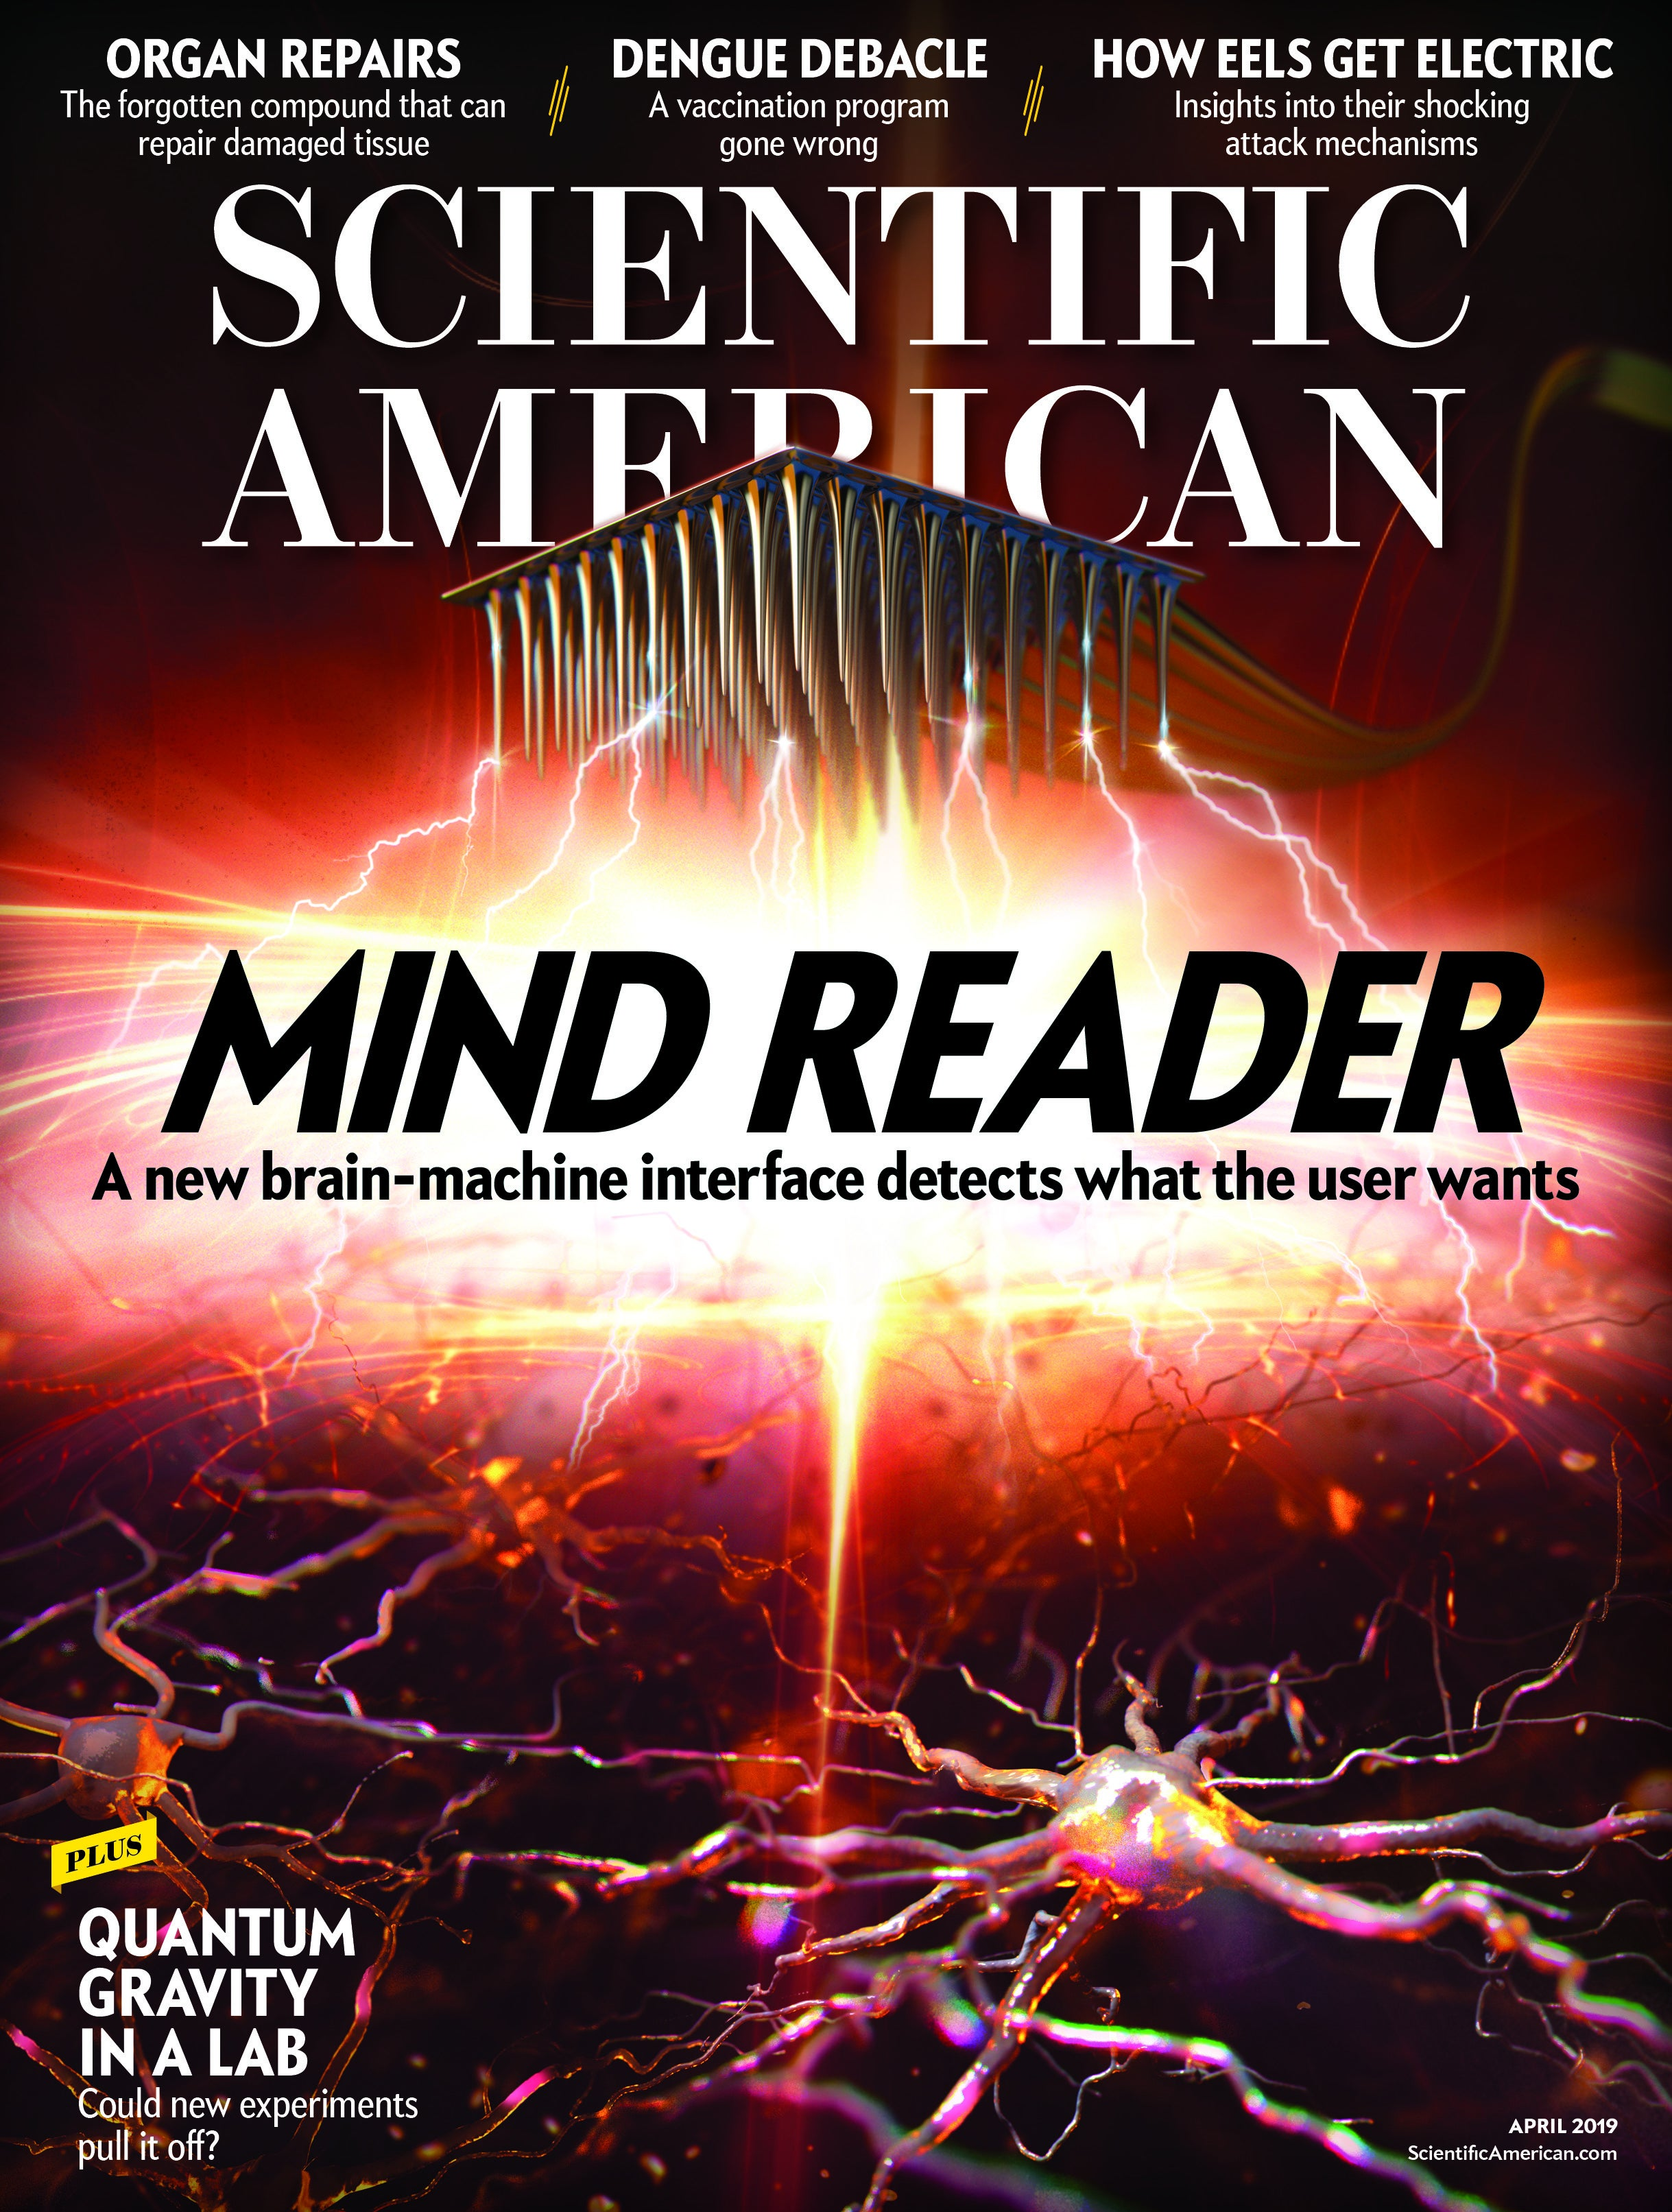 Scientific American Volume 320, Issue 4